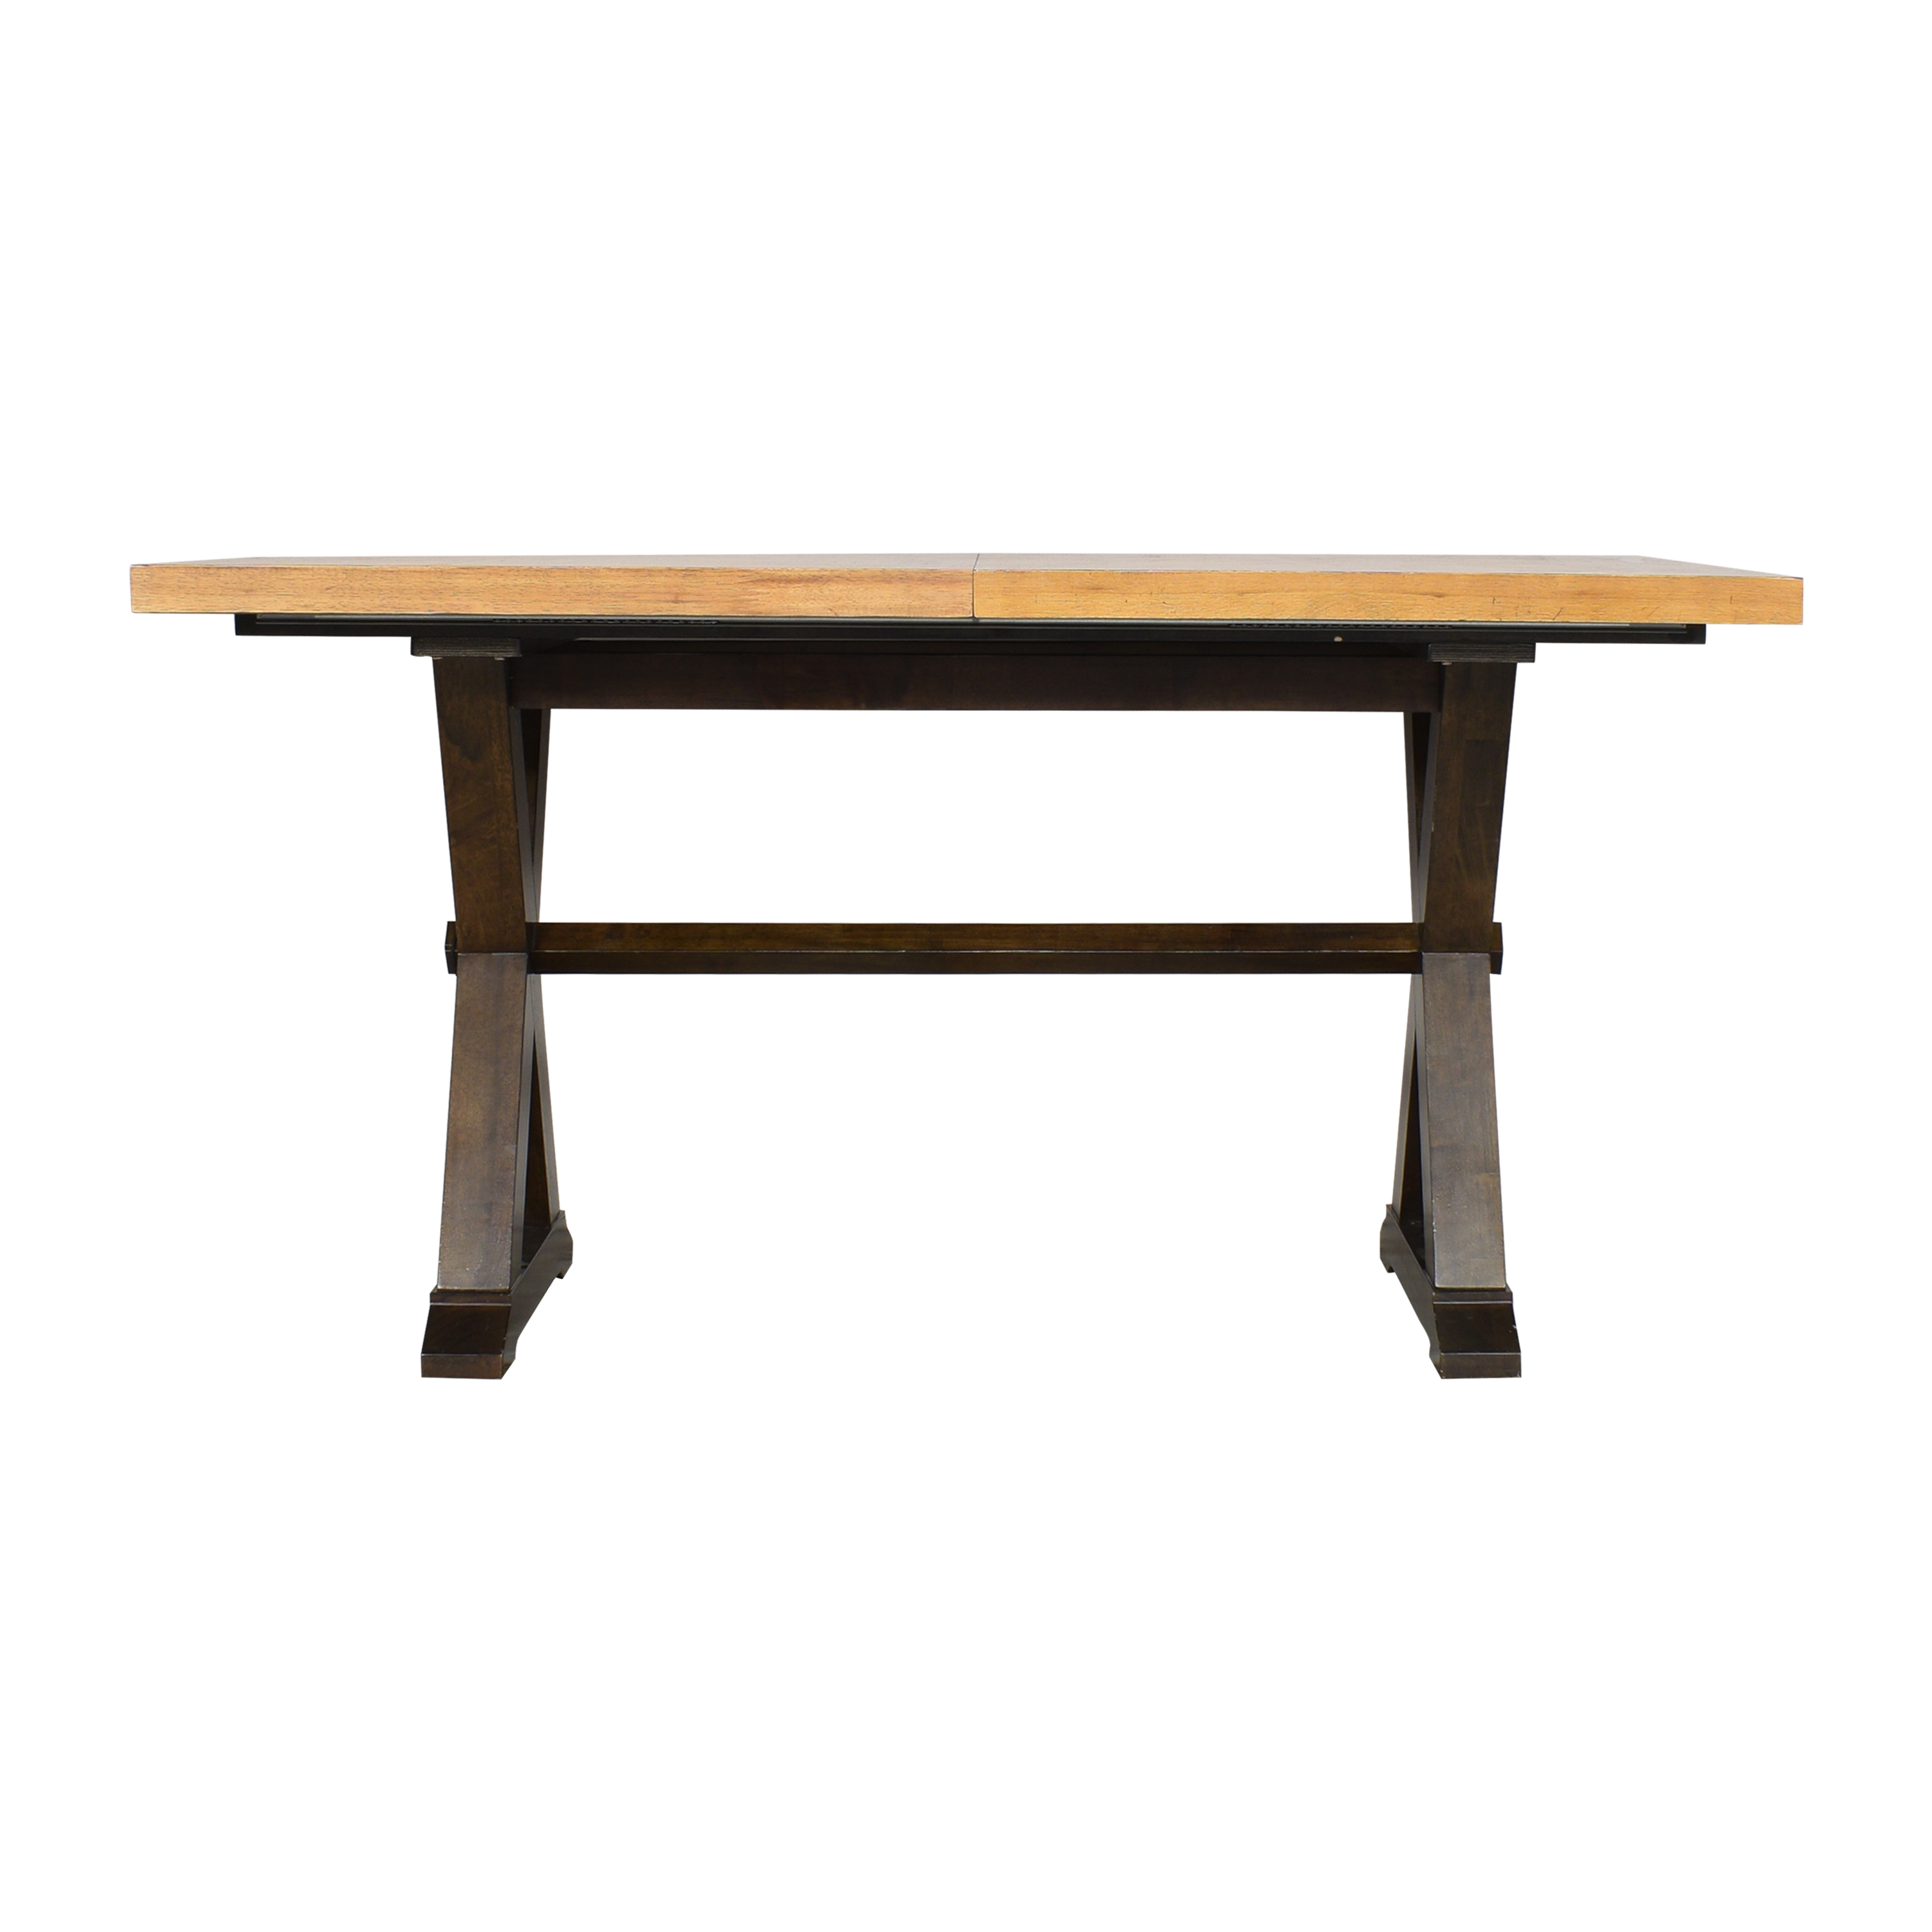 Raymour & Flanigan  Raymour & Flanigan Wexford Counter Height Dining Table ma